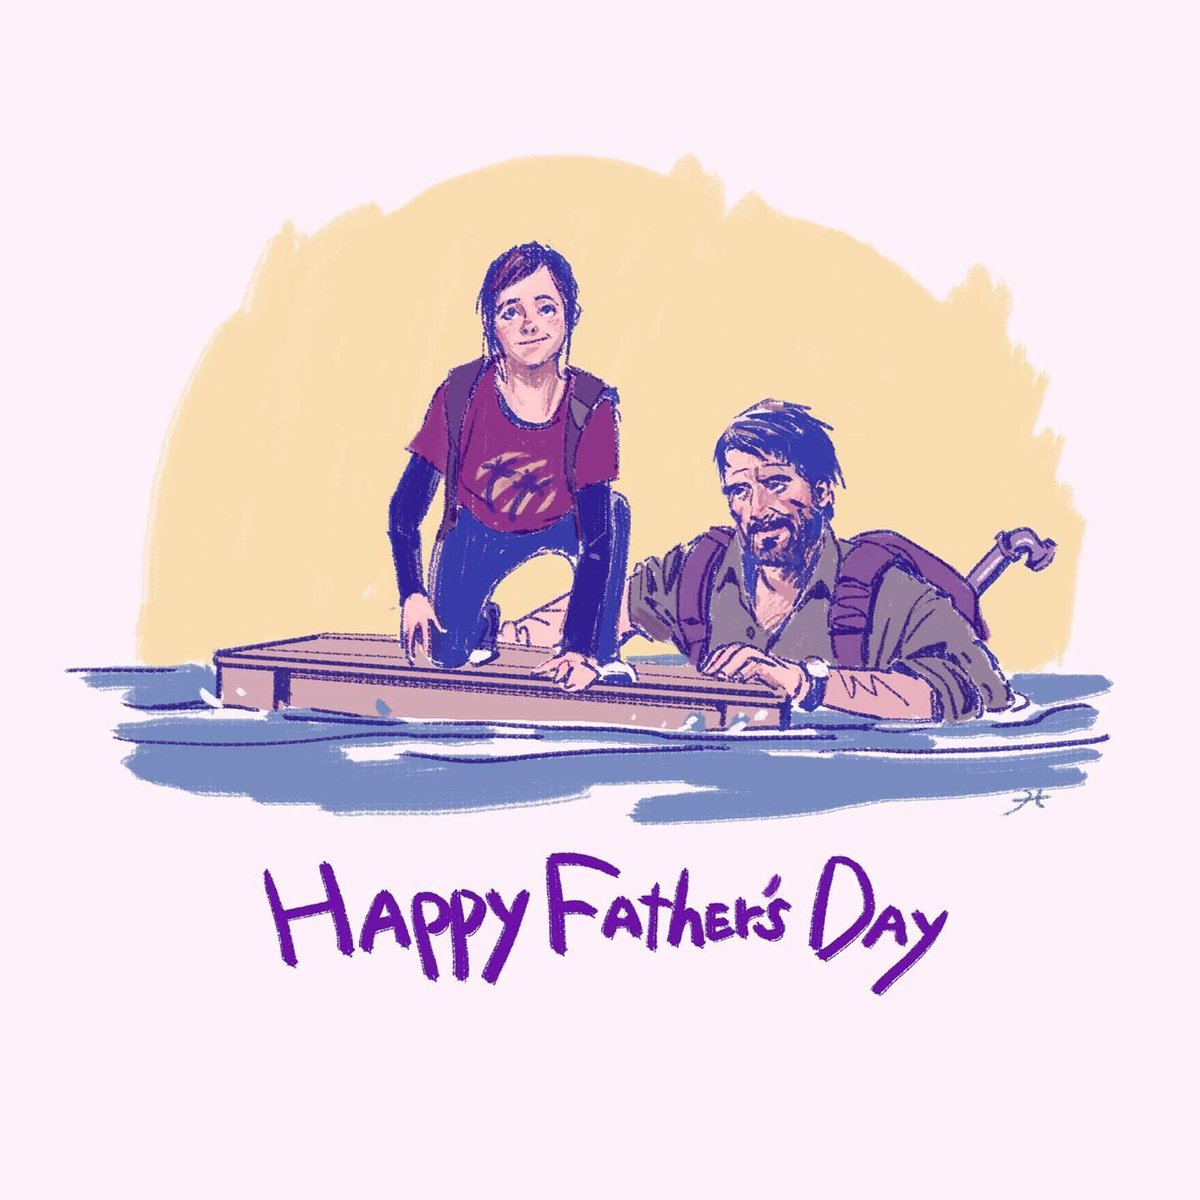 To all of the dads that help keep us afloat, Happy #FathersDay!